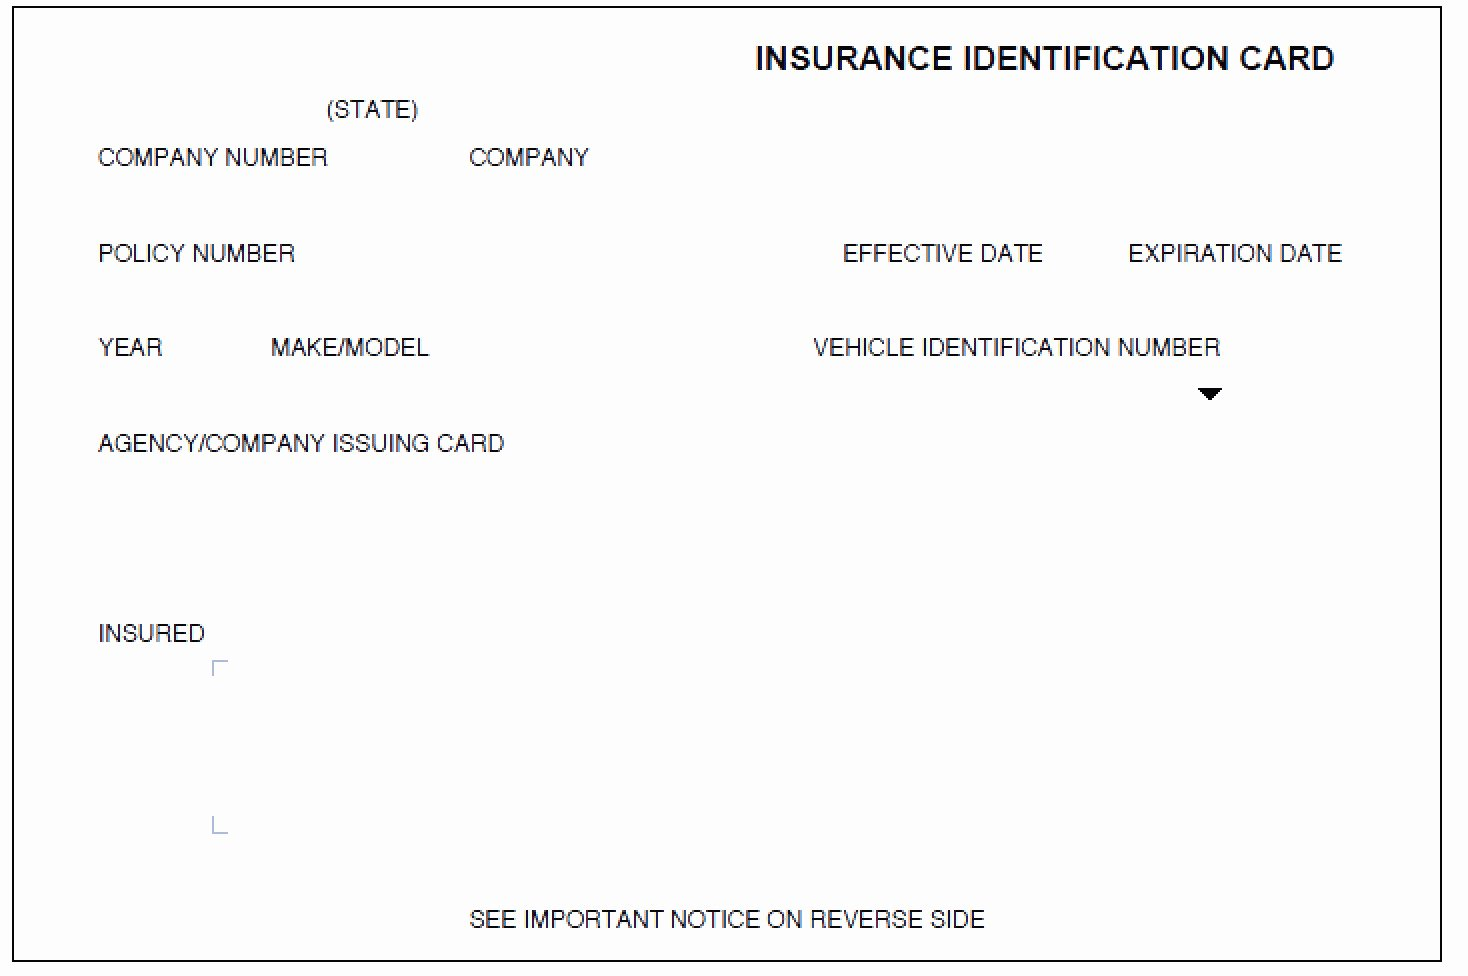 Auto Insurance Card Template Pdf New Auto Insurance Card Template Pdf 0 Discover China townsf